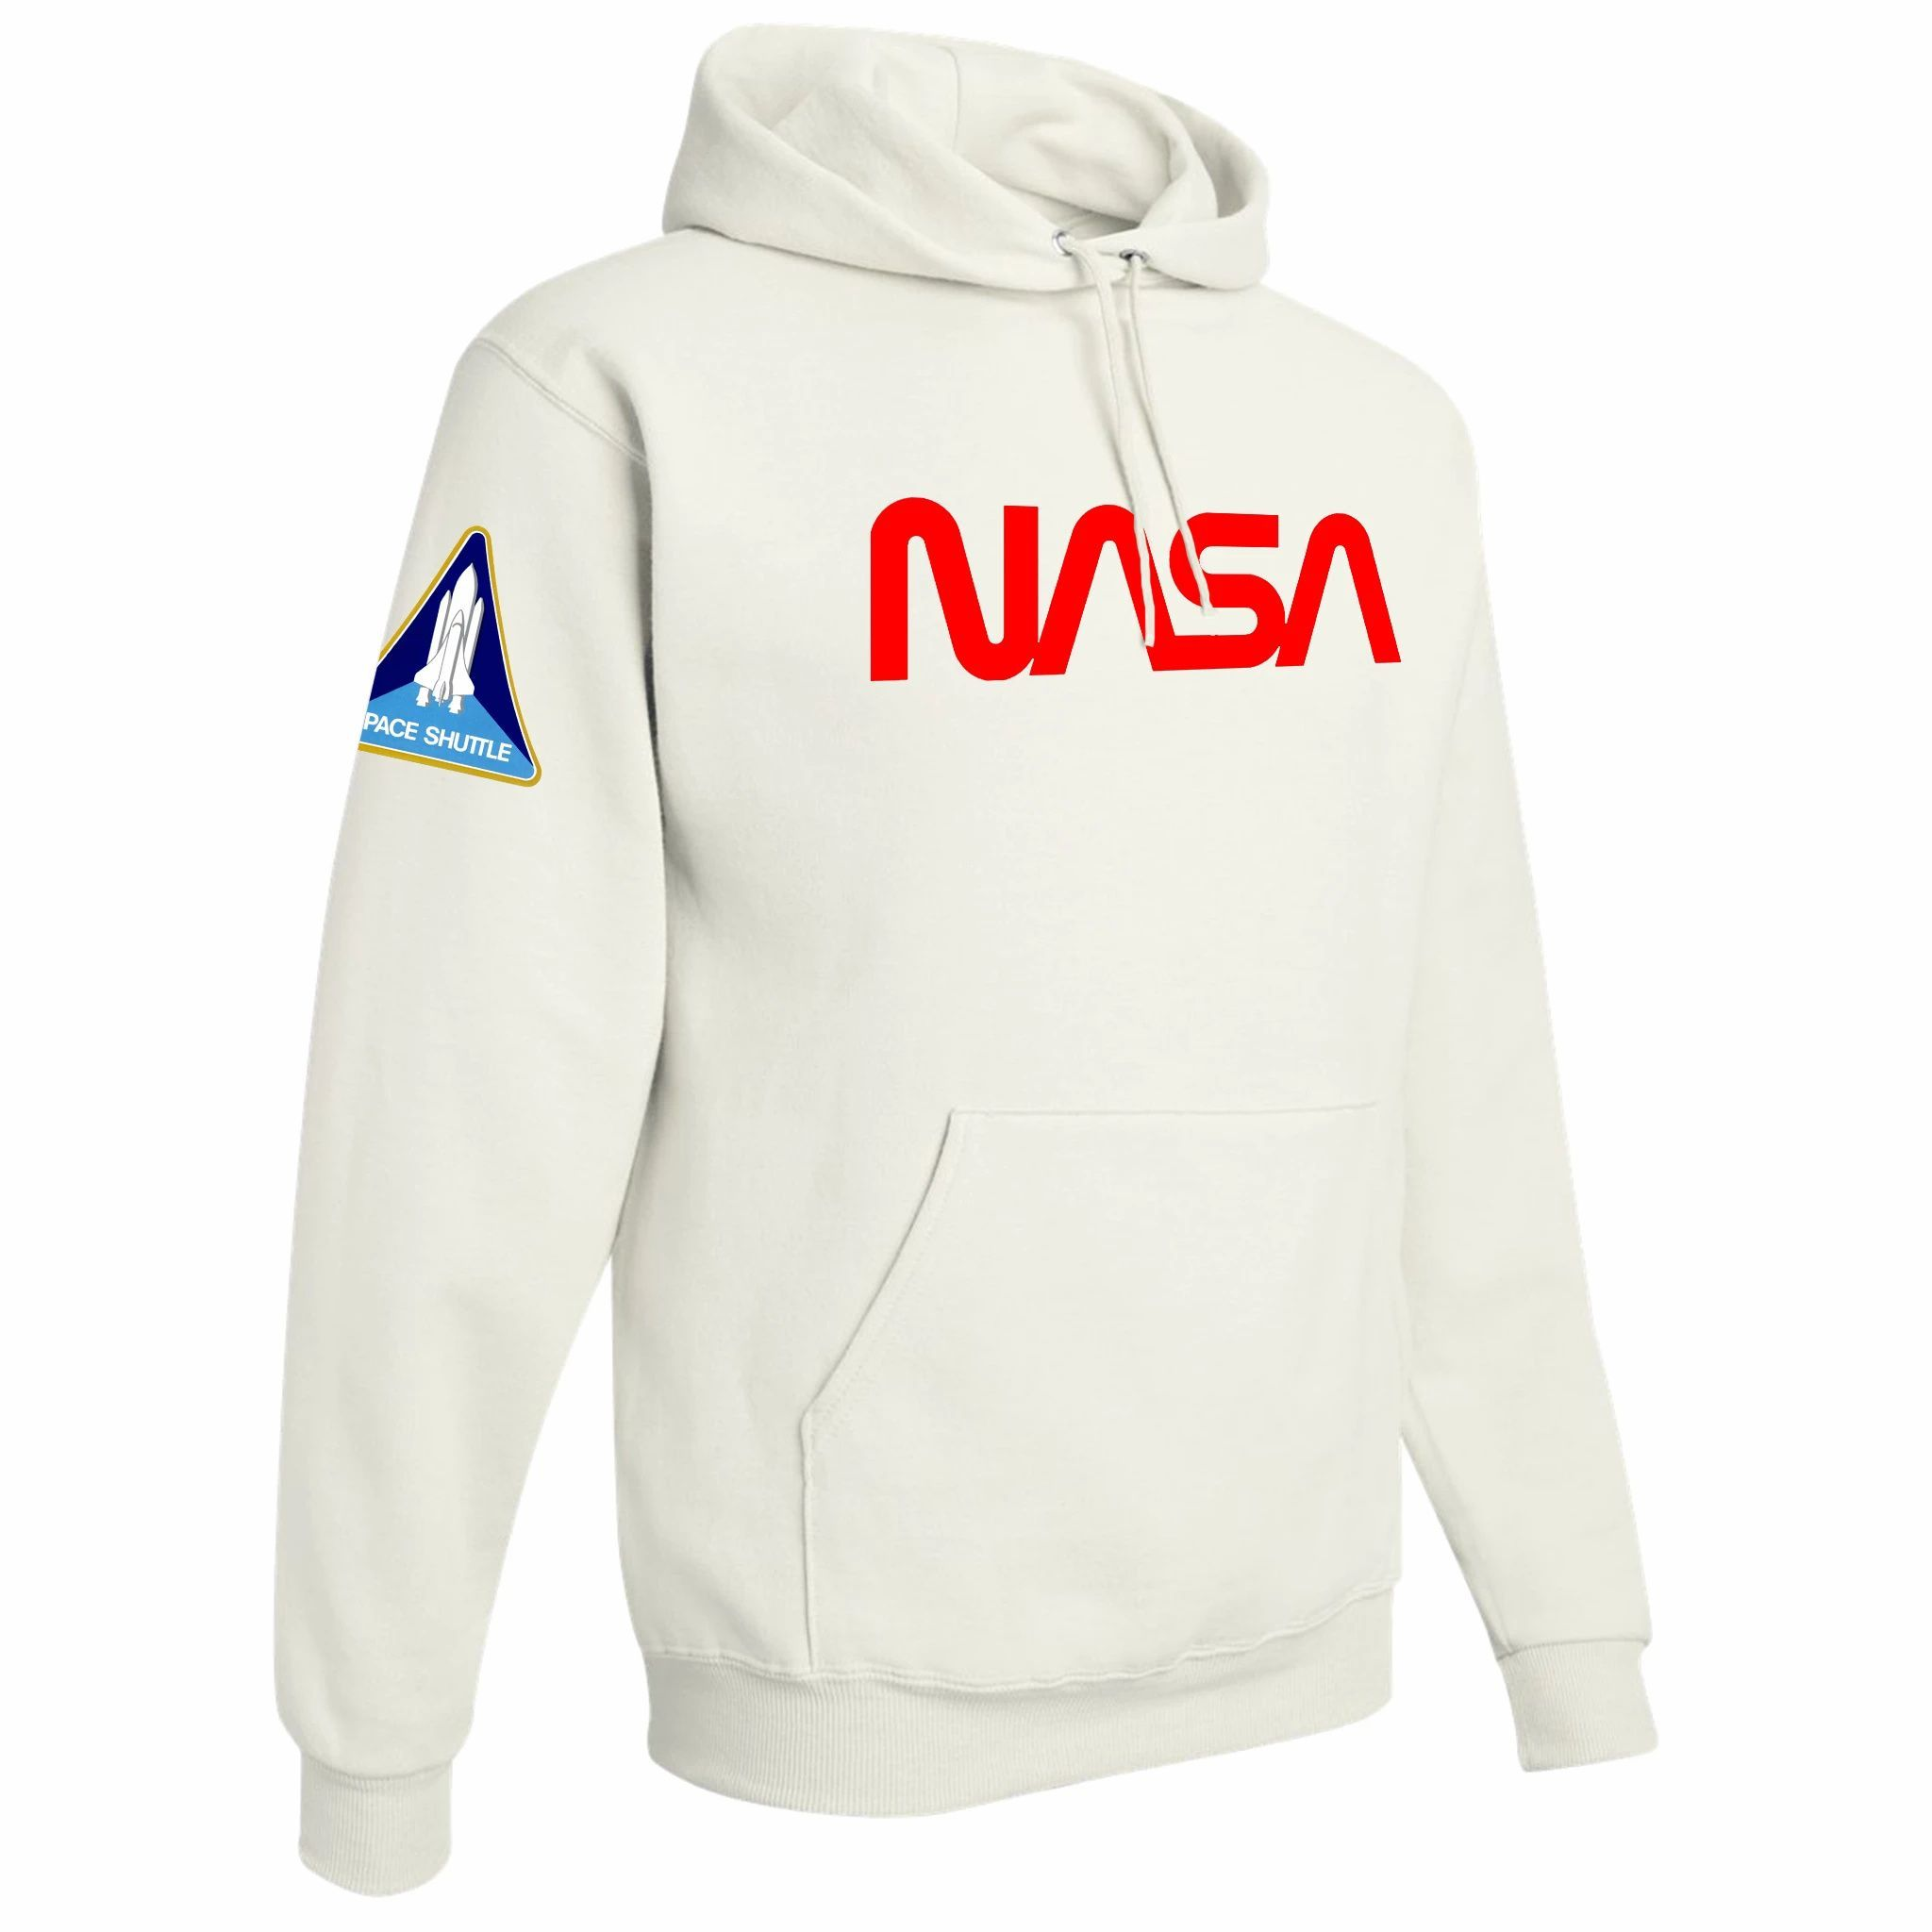 NASA Hoodies with Flags on Sleeves in 2020 White